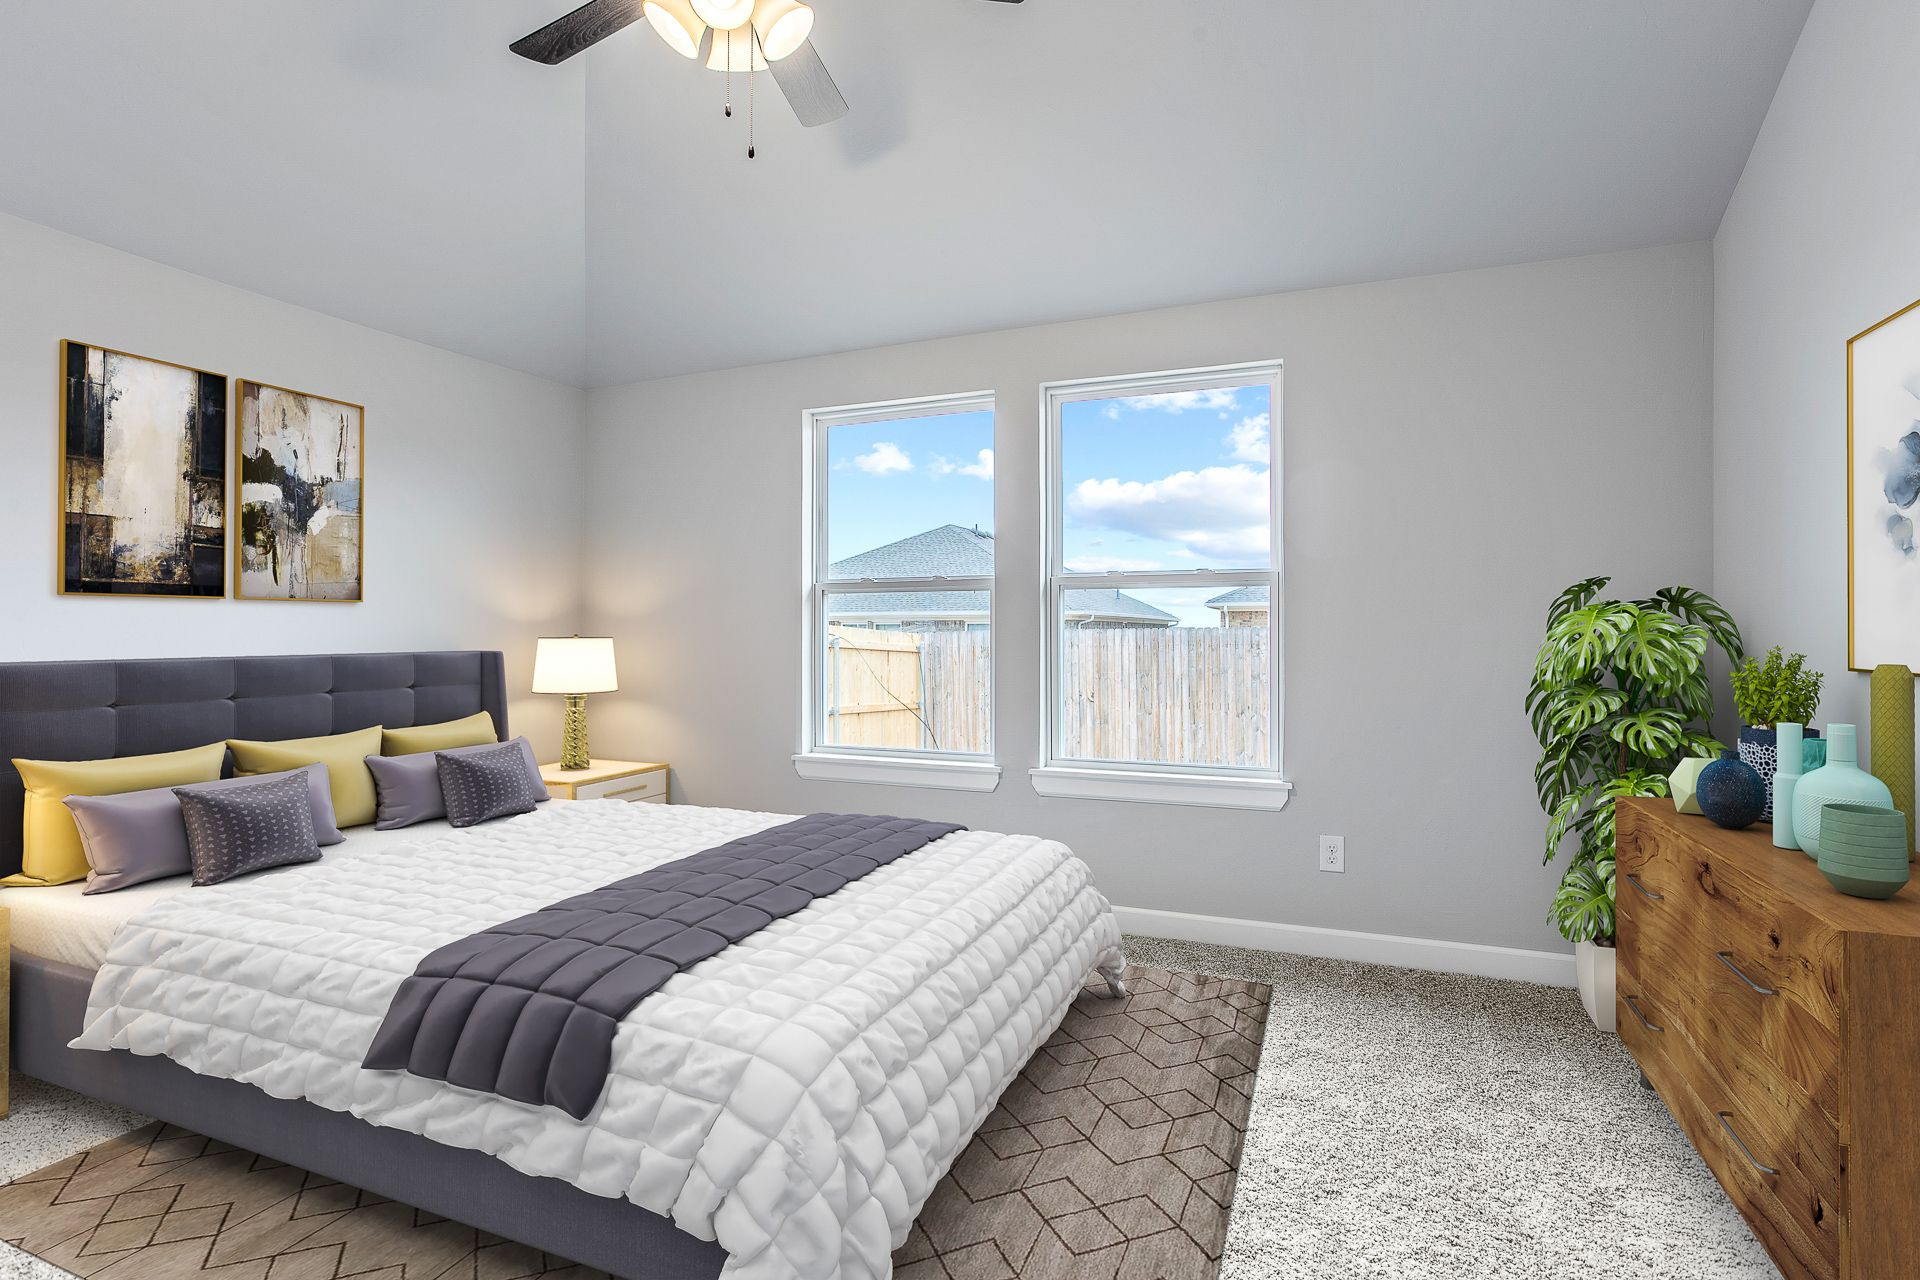 Bedroom featured in the Forrester By Ideal Homes in Oklahoma City, OK